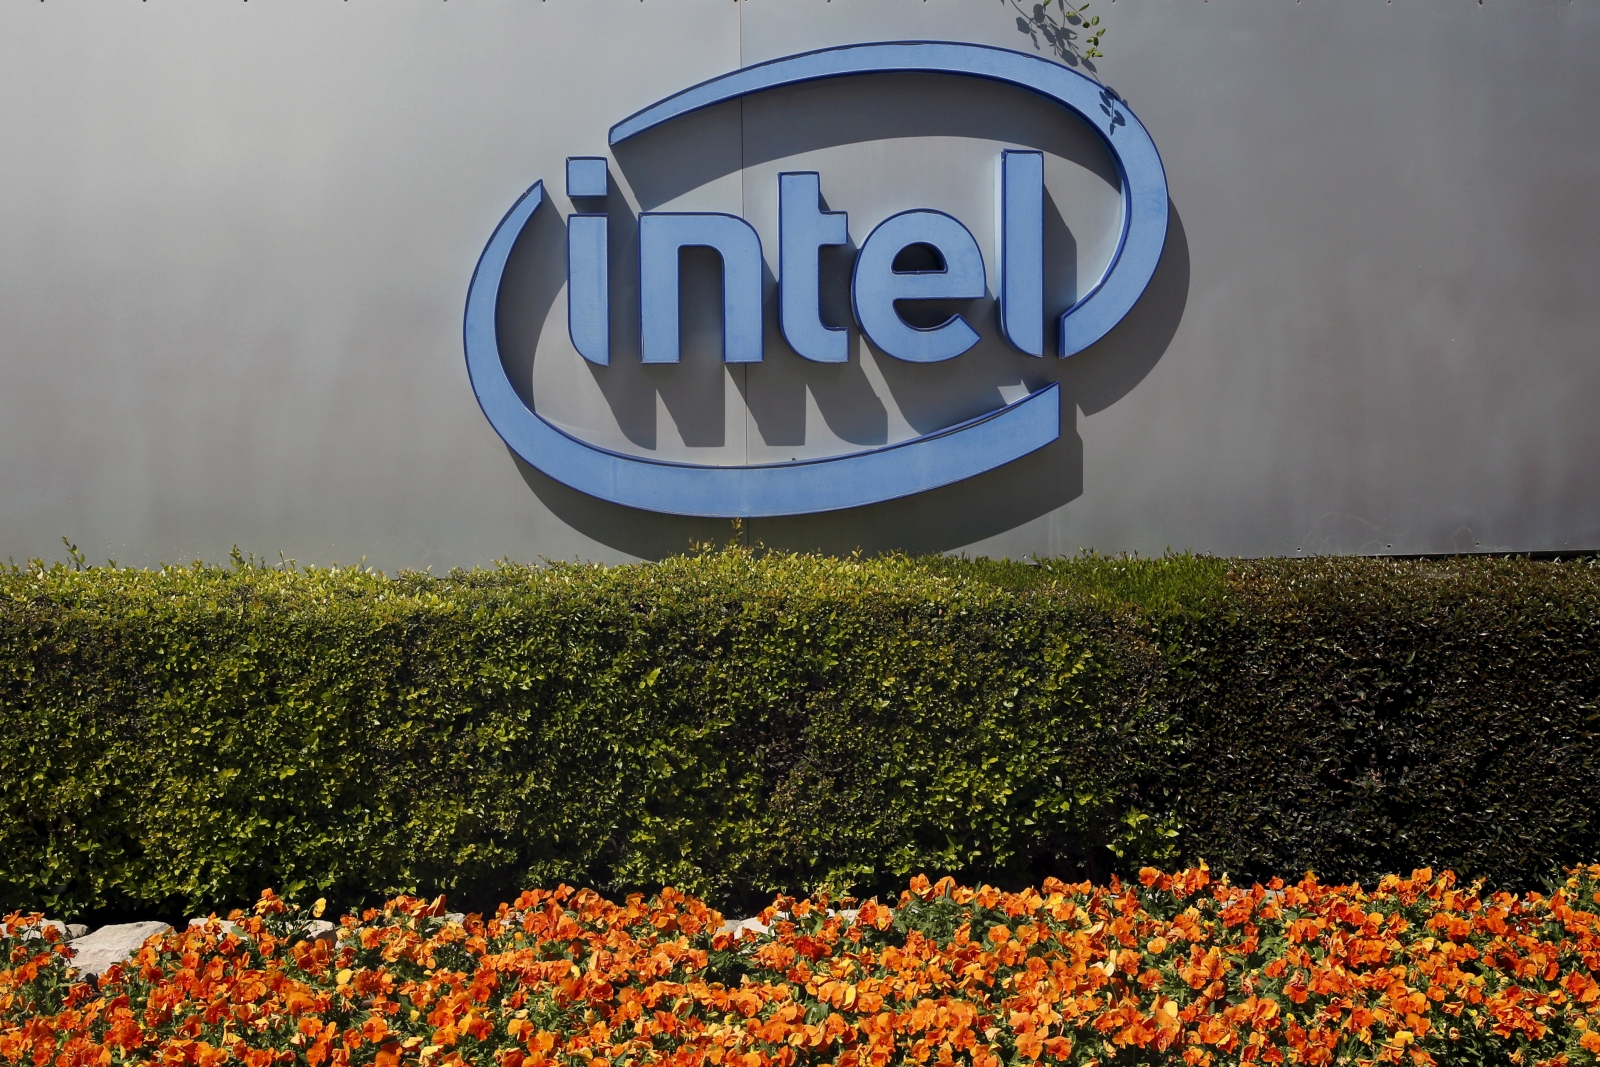 Intel Acquiring Mobileye For Autonomous Driving Technology